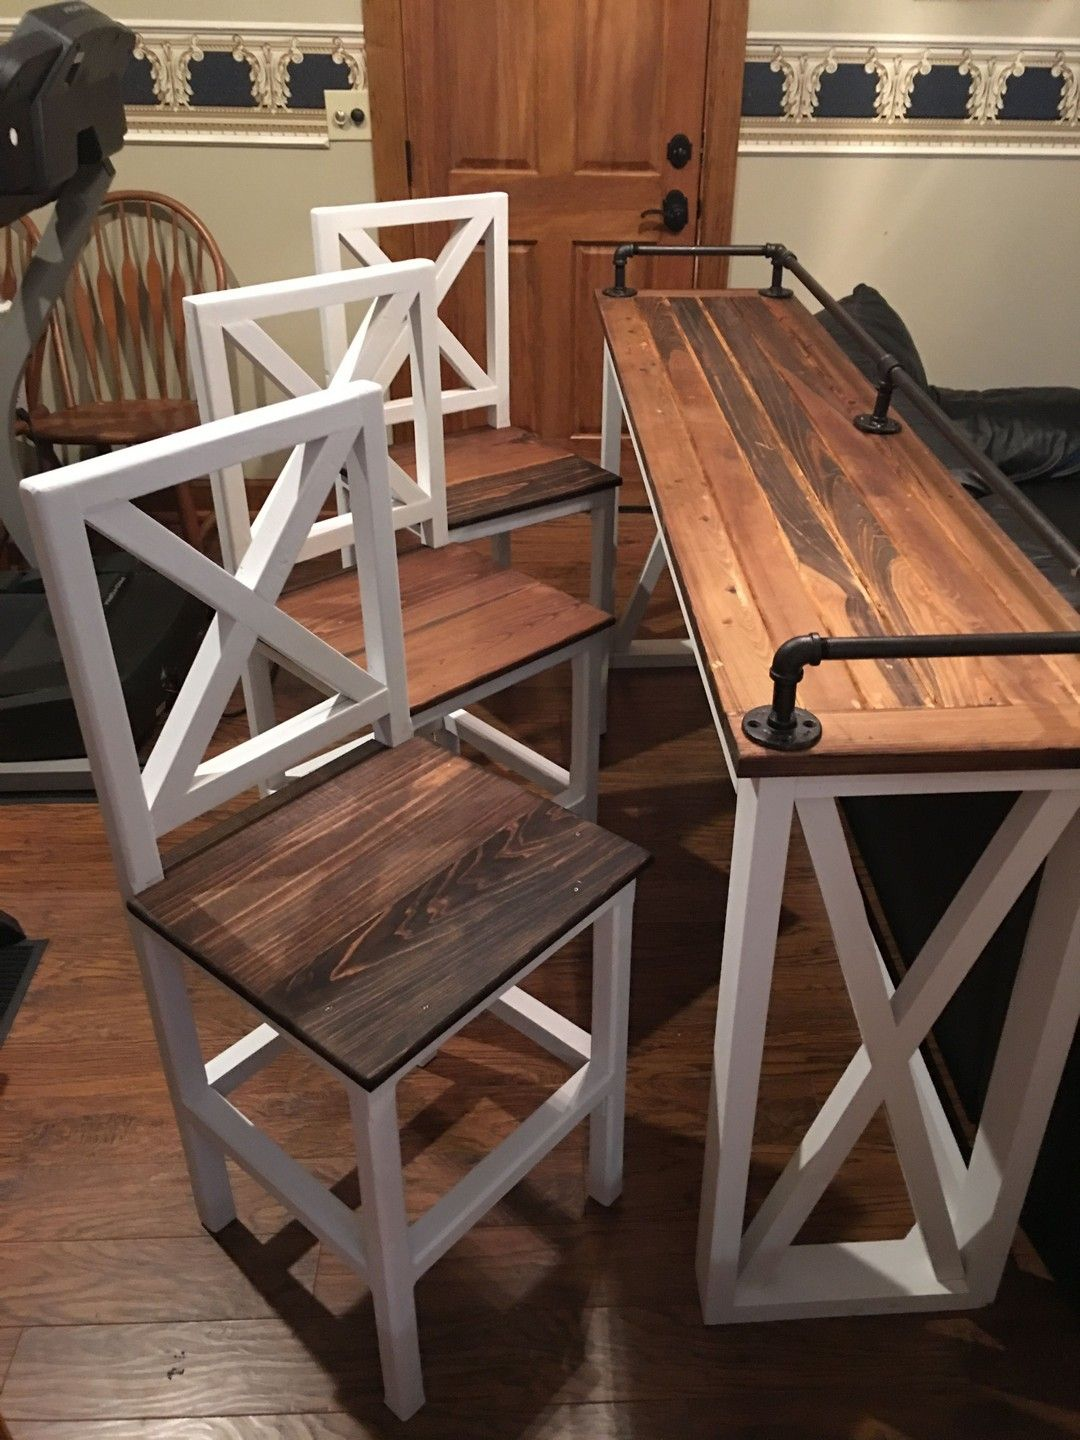 Super 27 Reclaimed Barn Wood Sofa Bar Table Diy Projects Game Pdpeps Interior Chair Design Pdpepsorg